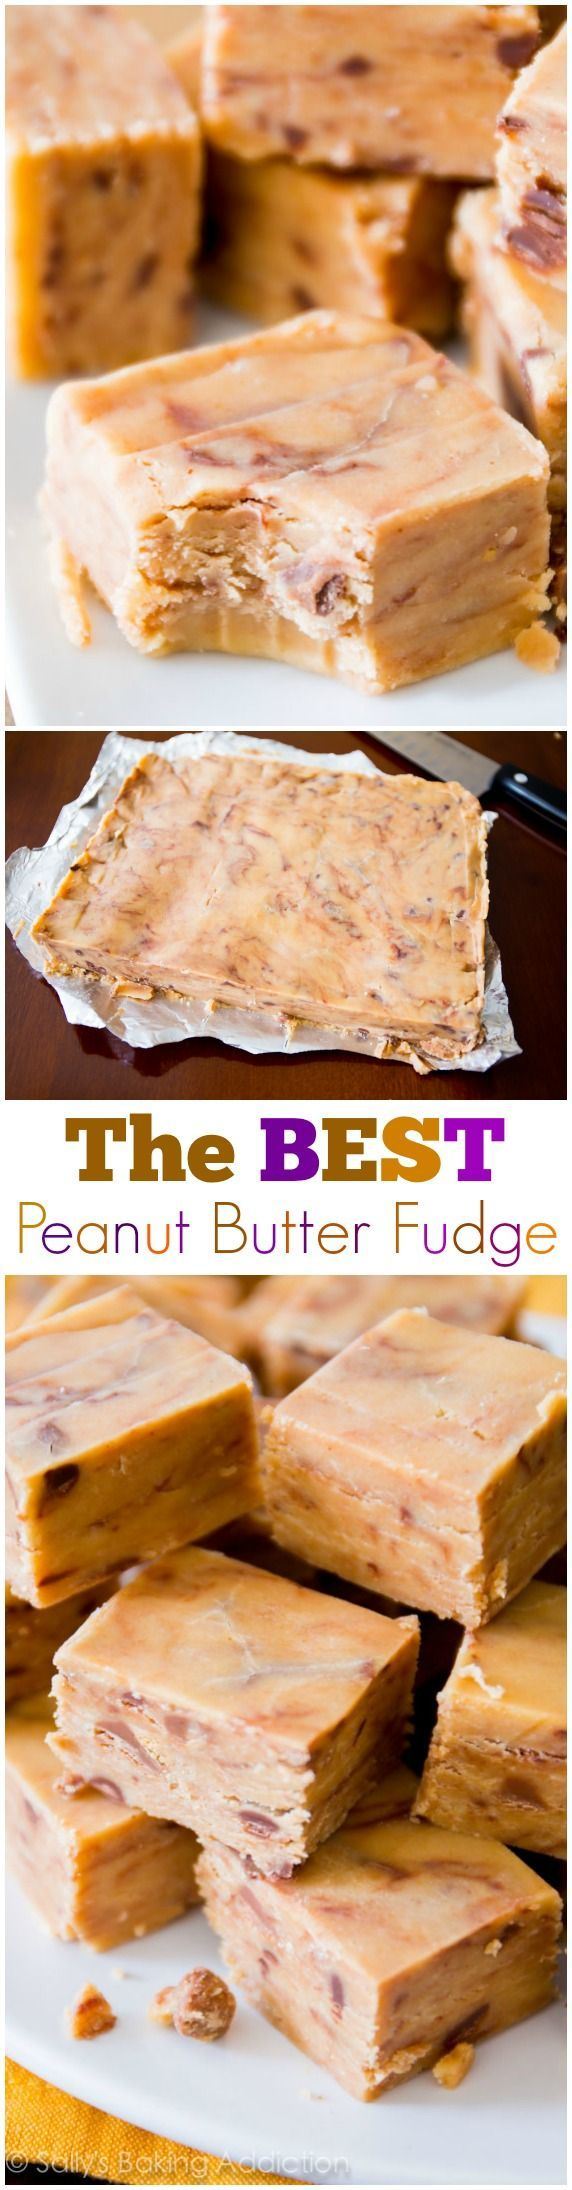 An easy recipe for creamy, decadent peanut butter fudge! Only 4 ingredients.